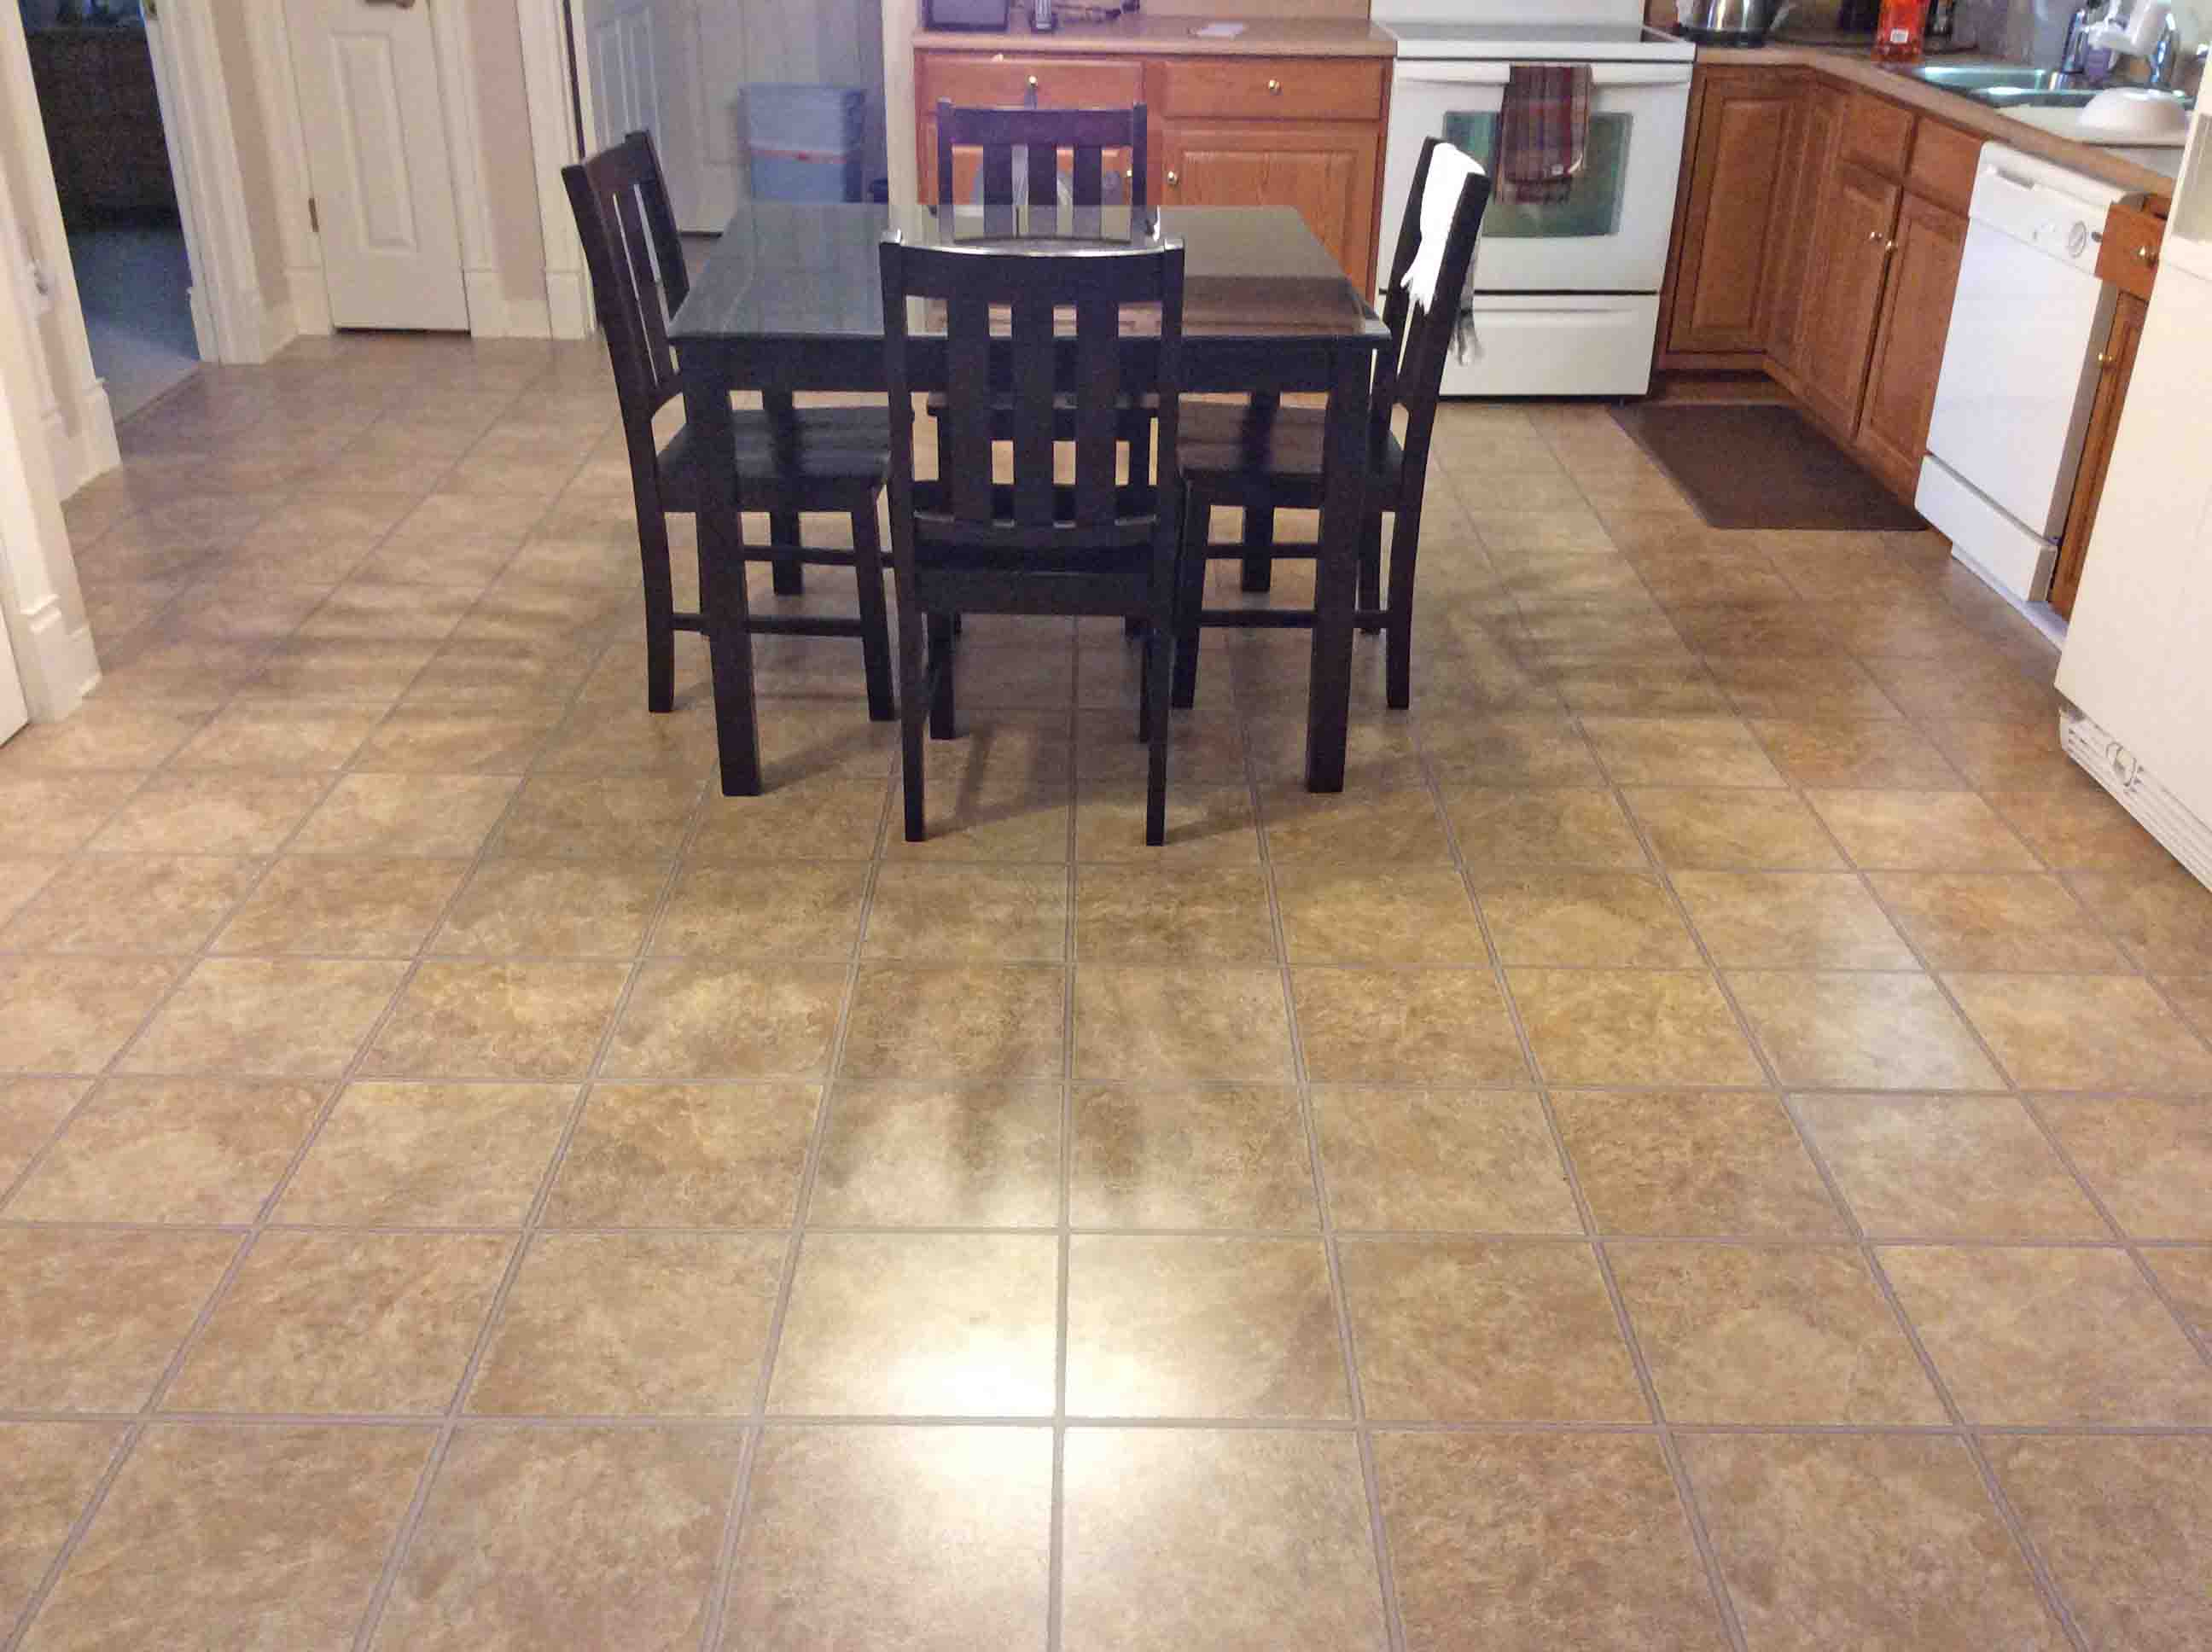 Picture Of A Vinyl Tiled Kitchen Floor, After Cleaning.